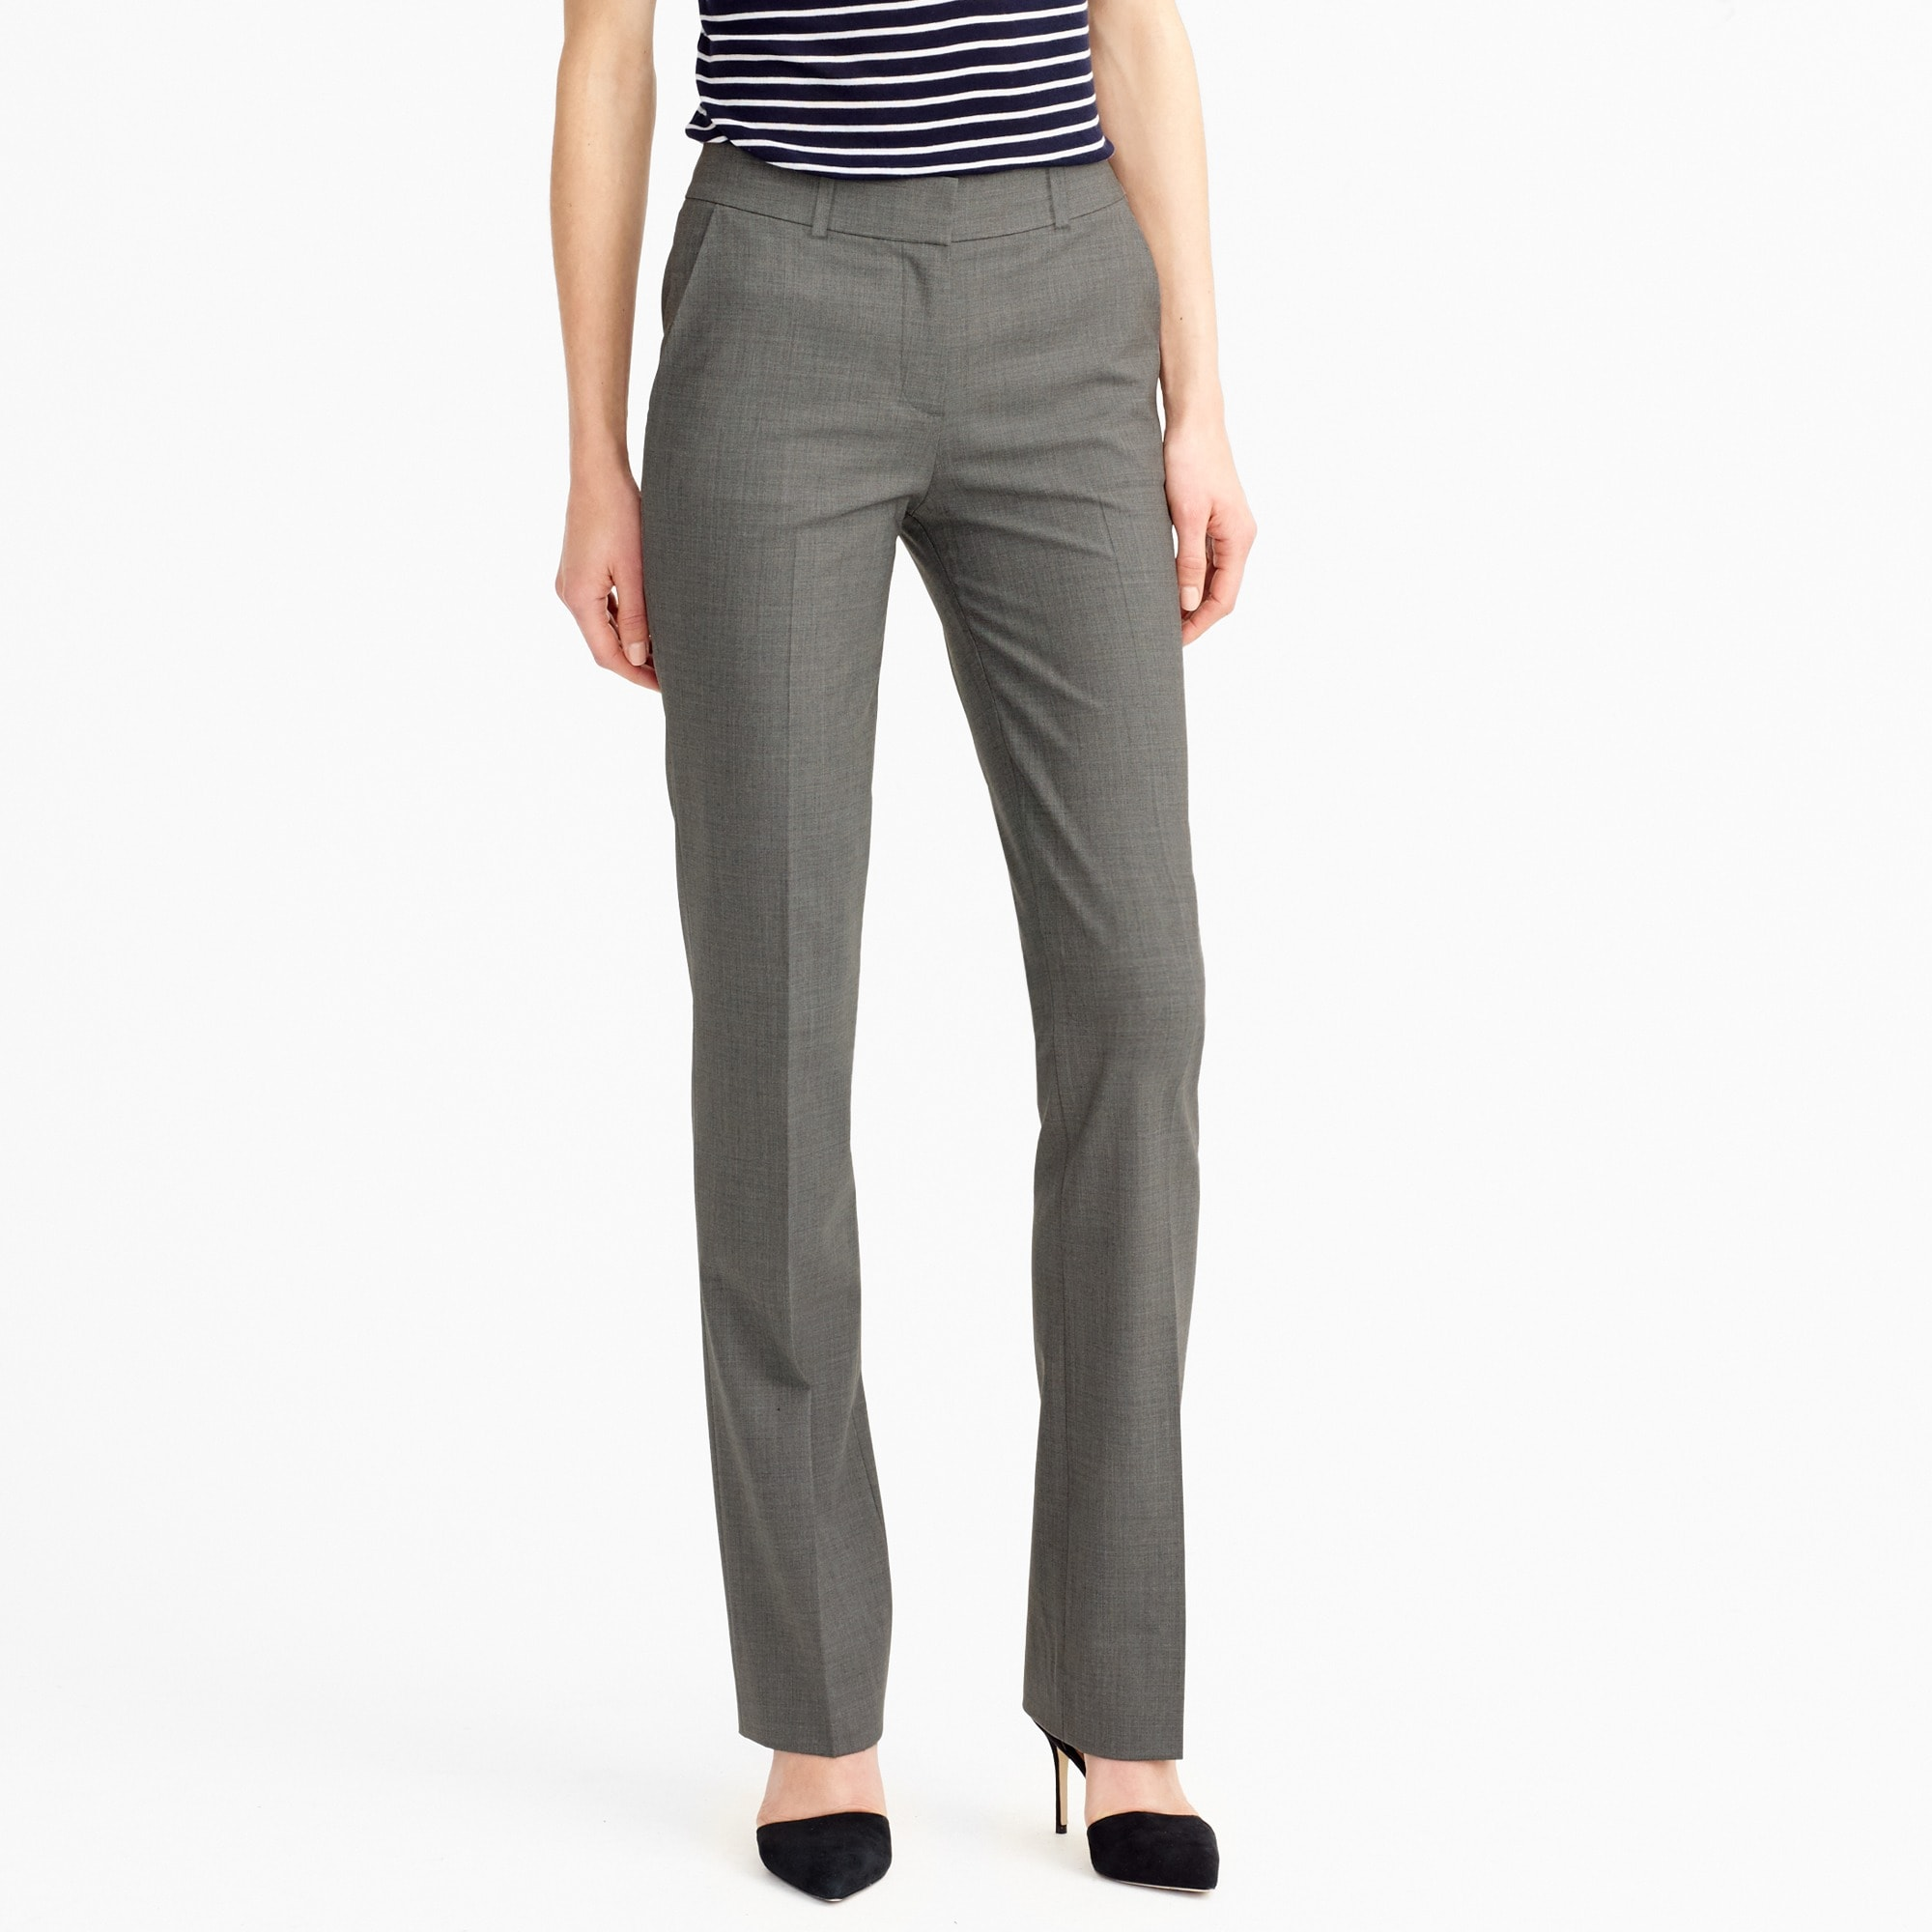 Lined Campbell trouser in Italian stretch wool